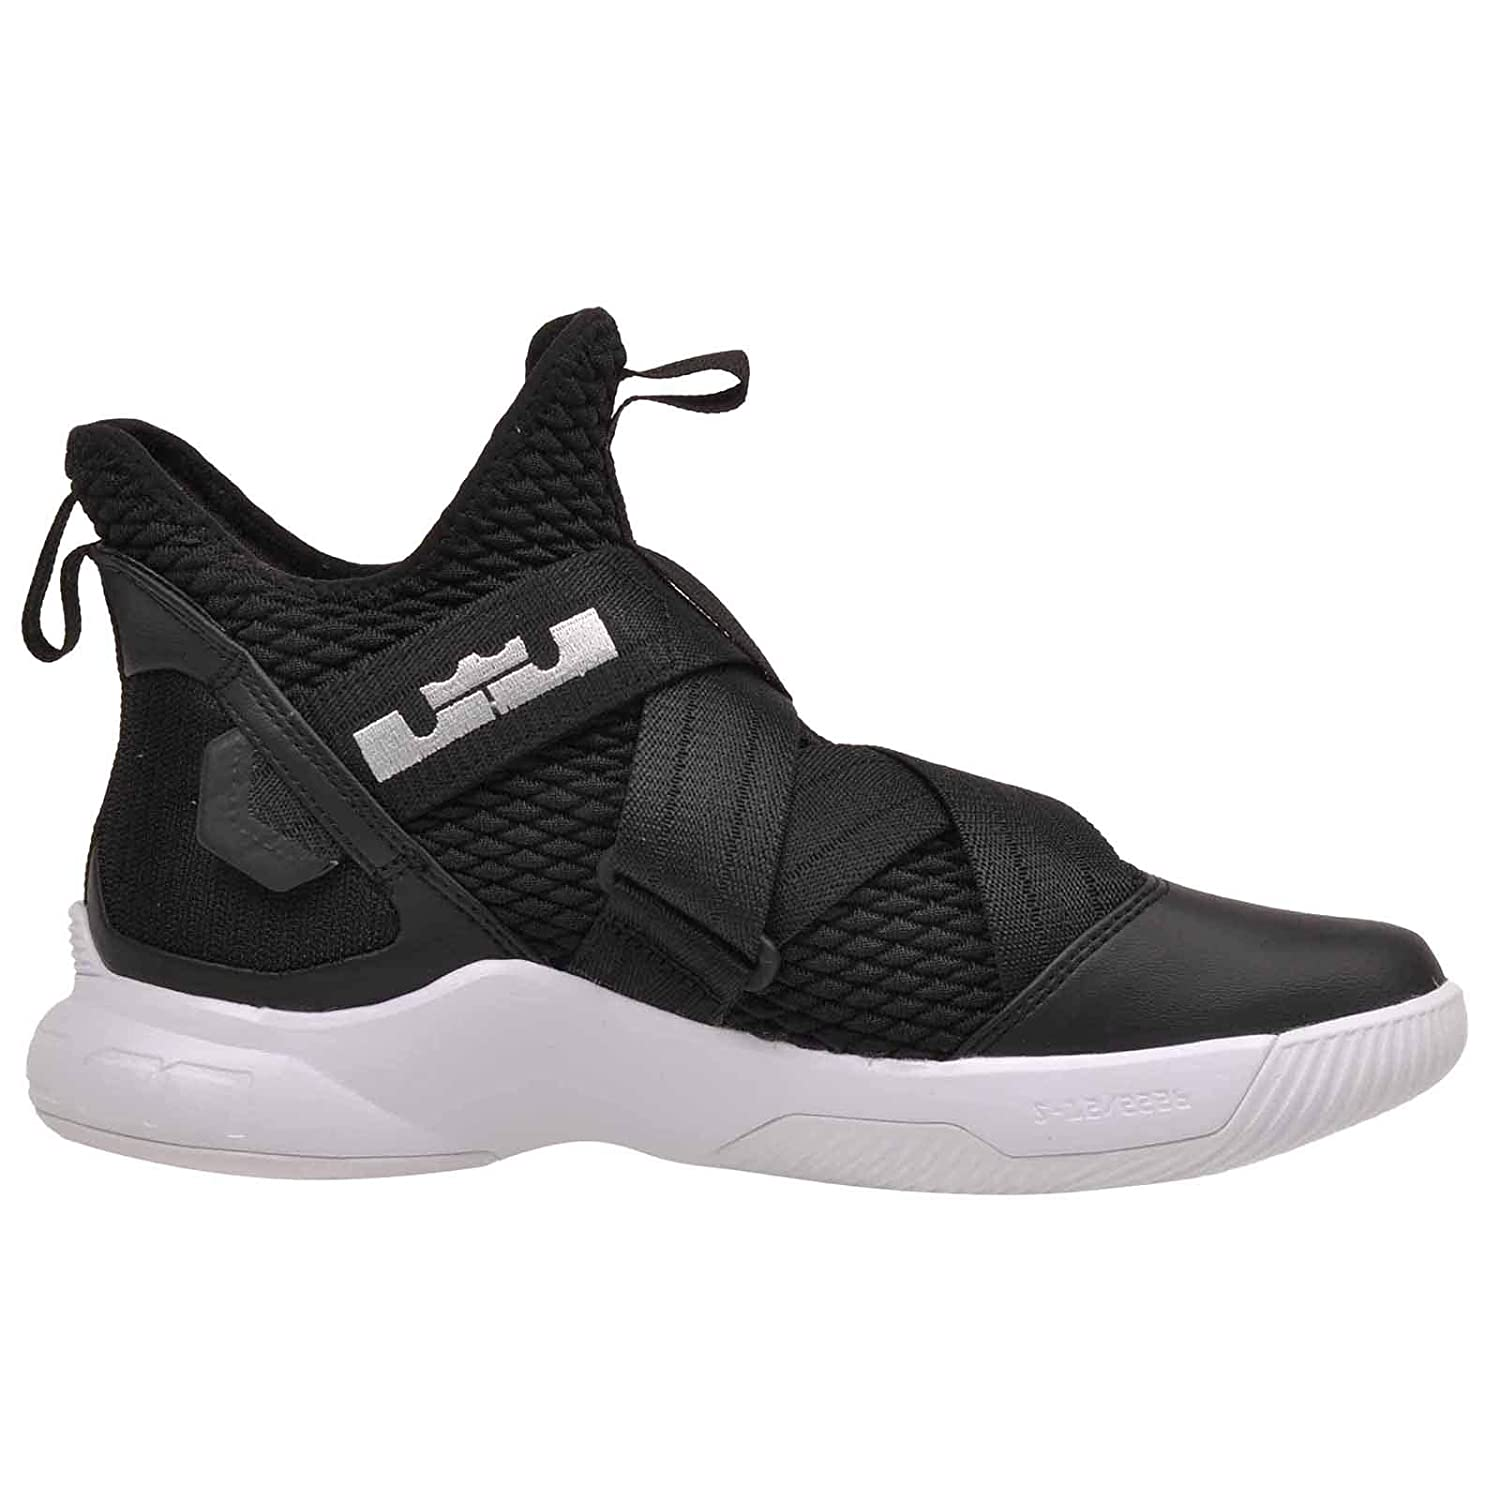 low priced 32165 3514c Nike Men's Lebron Soldier XII Basketball Shoe